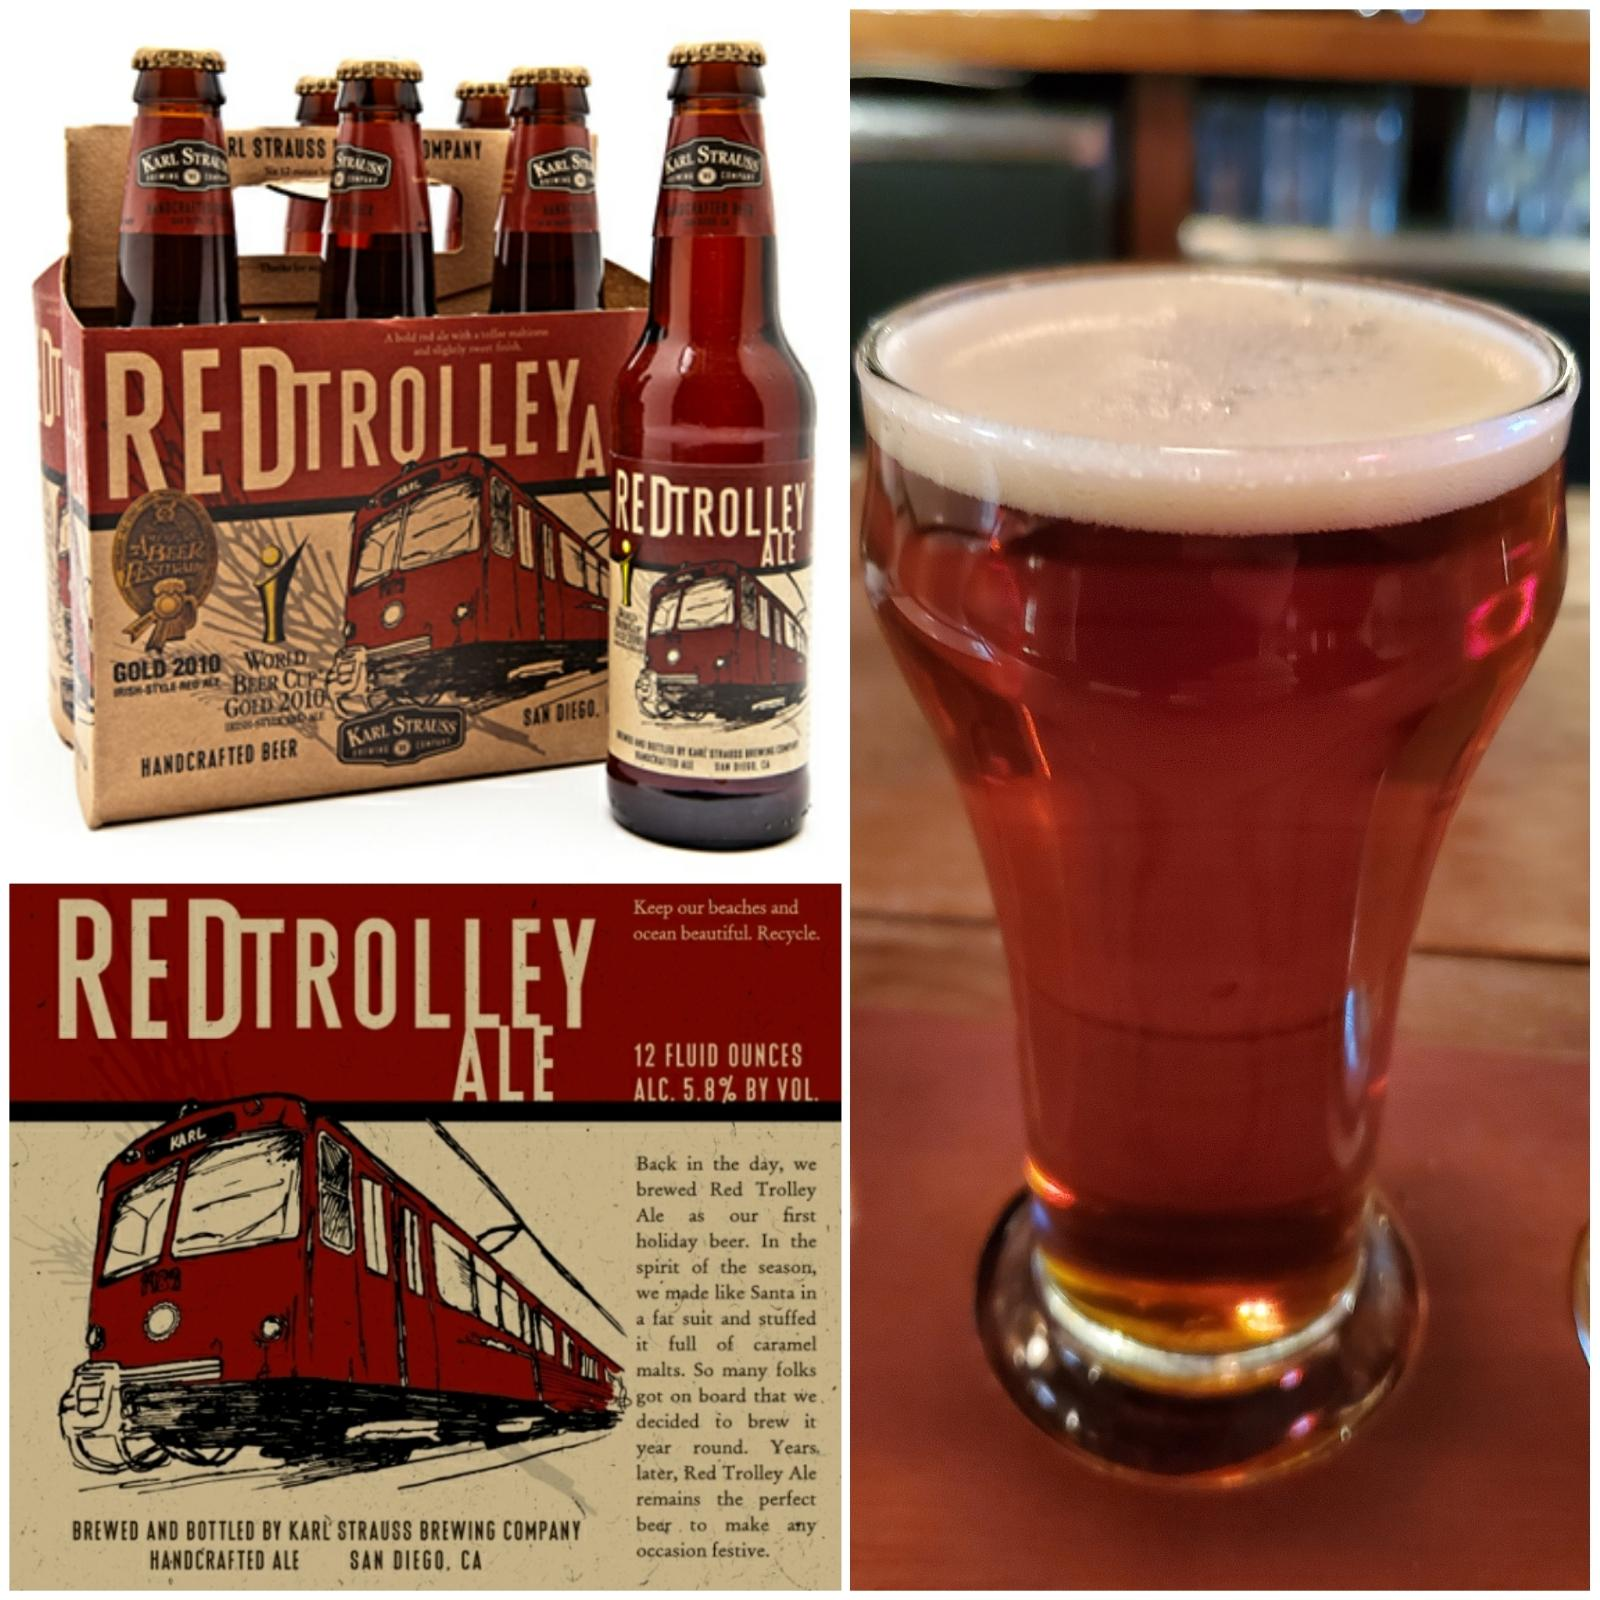 Red Trolley Ale